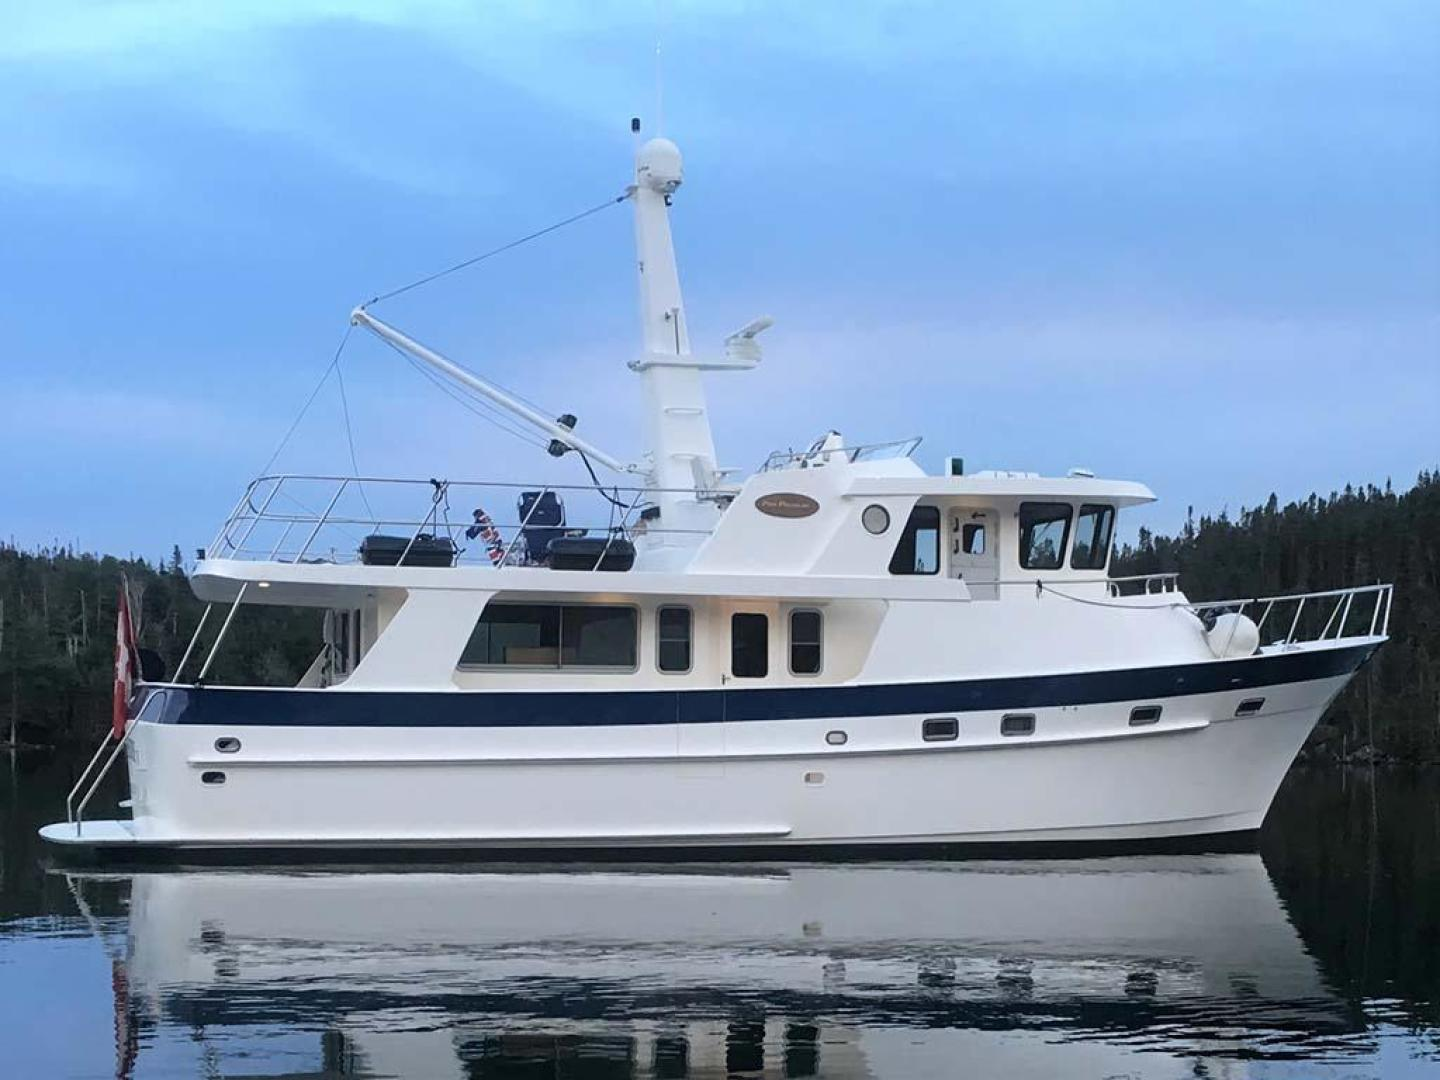 Integrity-496 Trawler 2007-Pier Pressure V St. Johns-Newfoundland And Labrador-Canada-Profile-920686 | Thumbnail